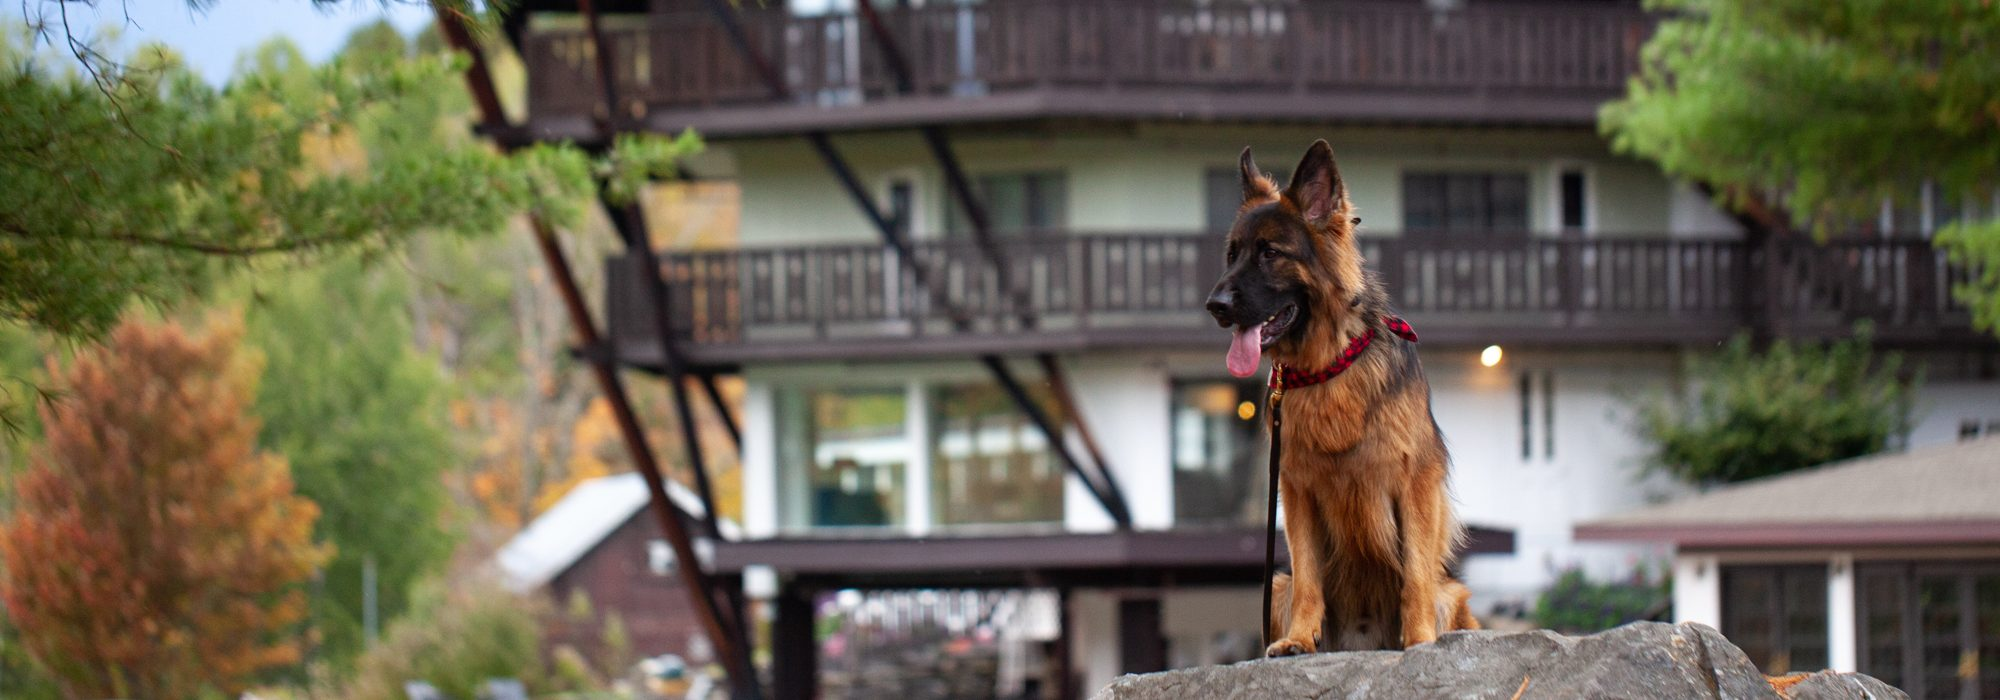 Dog Friendly Guide to Stowe, VT